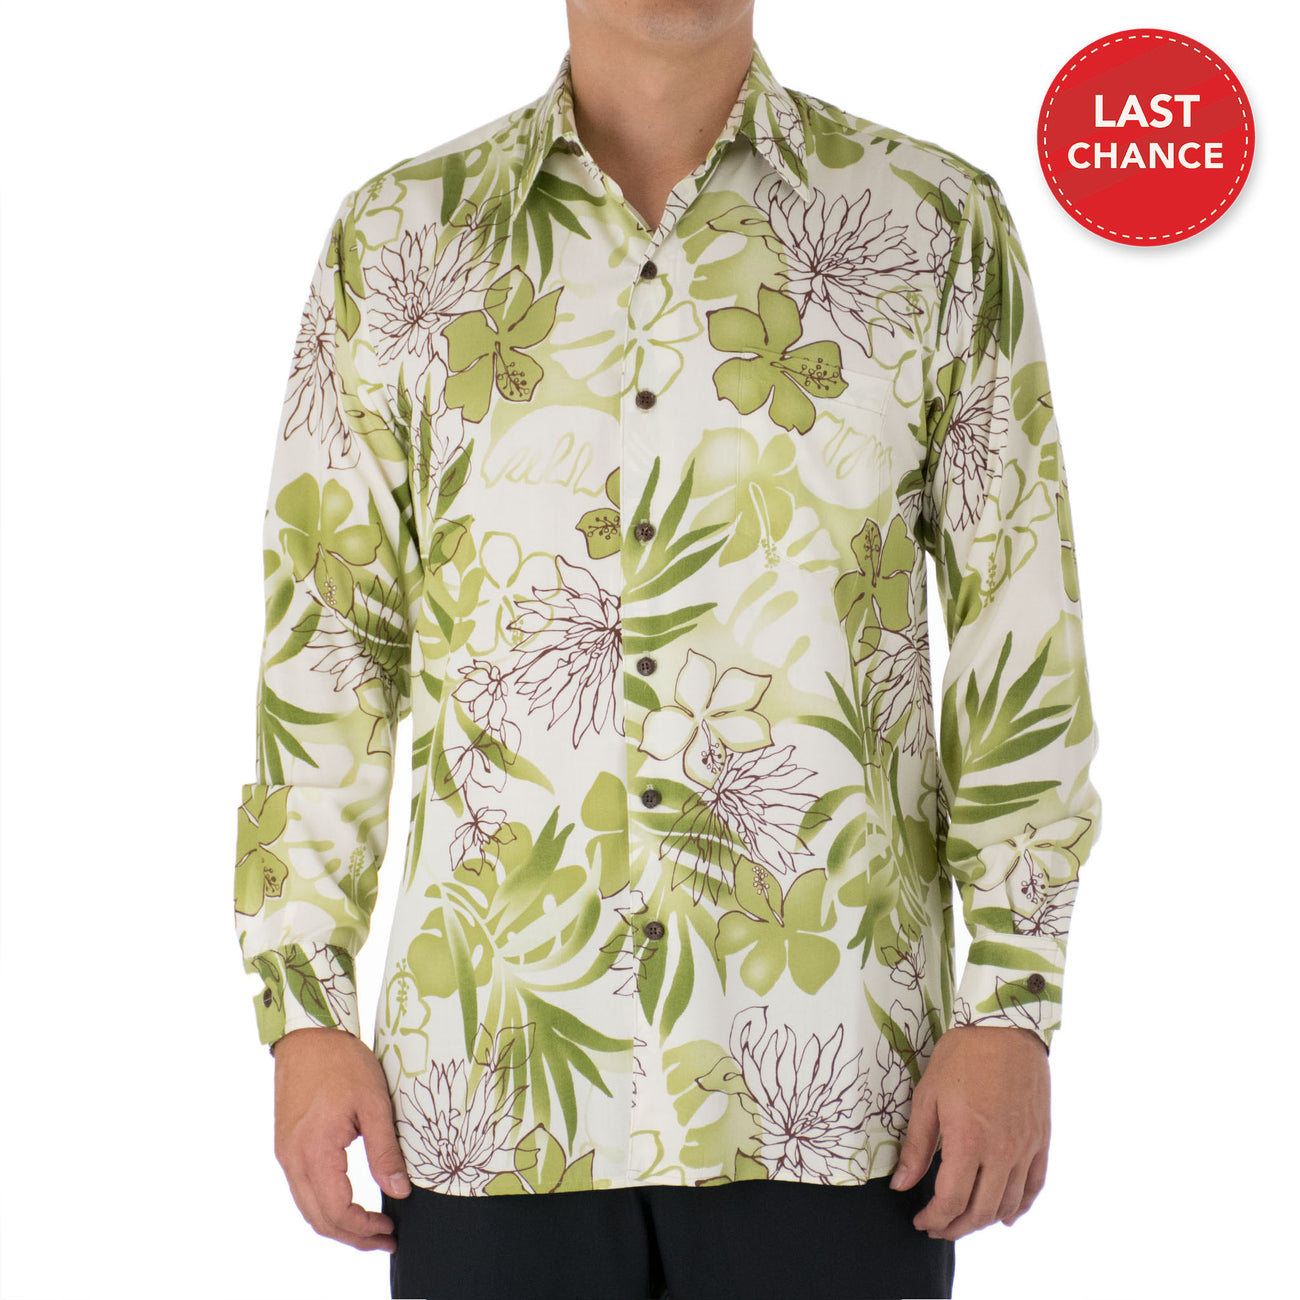 NAPUA LONG SLEEVE ALOHA SHIRT